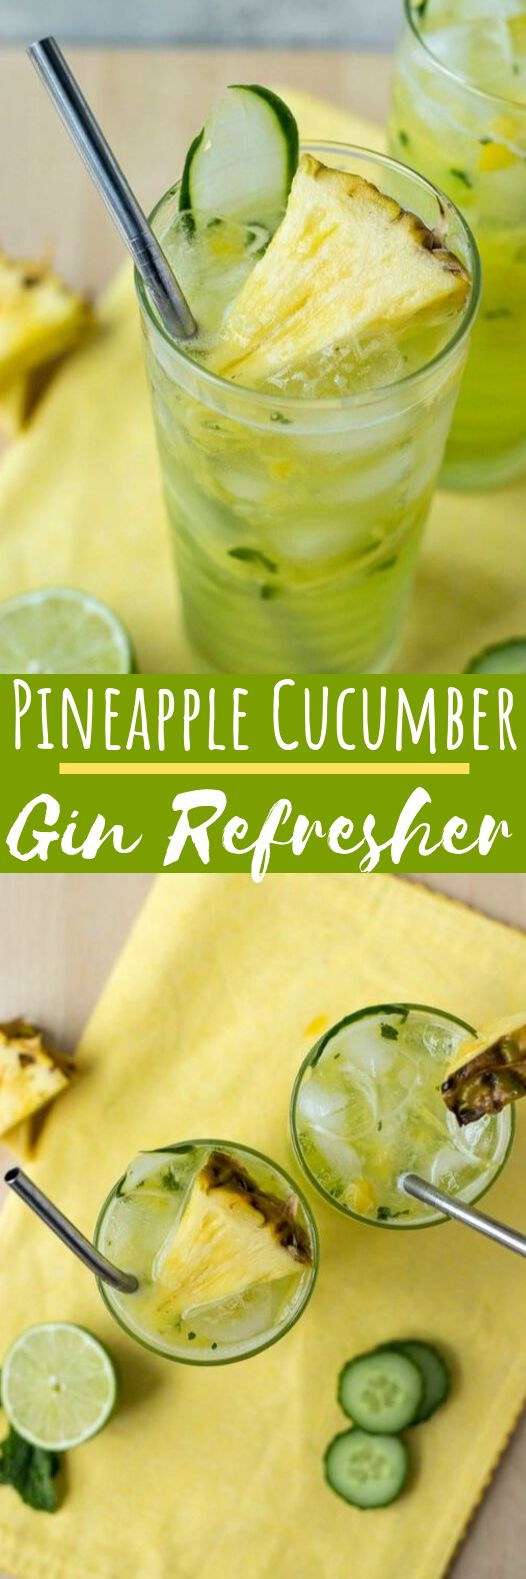 Cucumber Pineapple Gin Refresher #drinks #cocktails